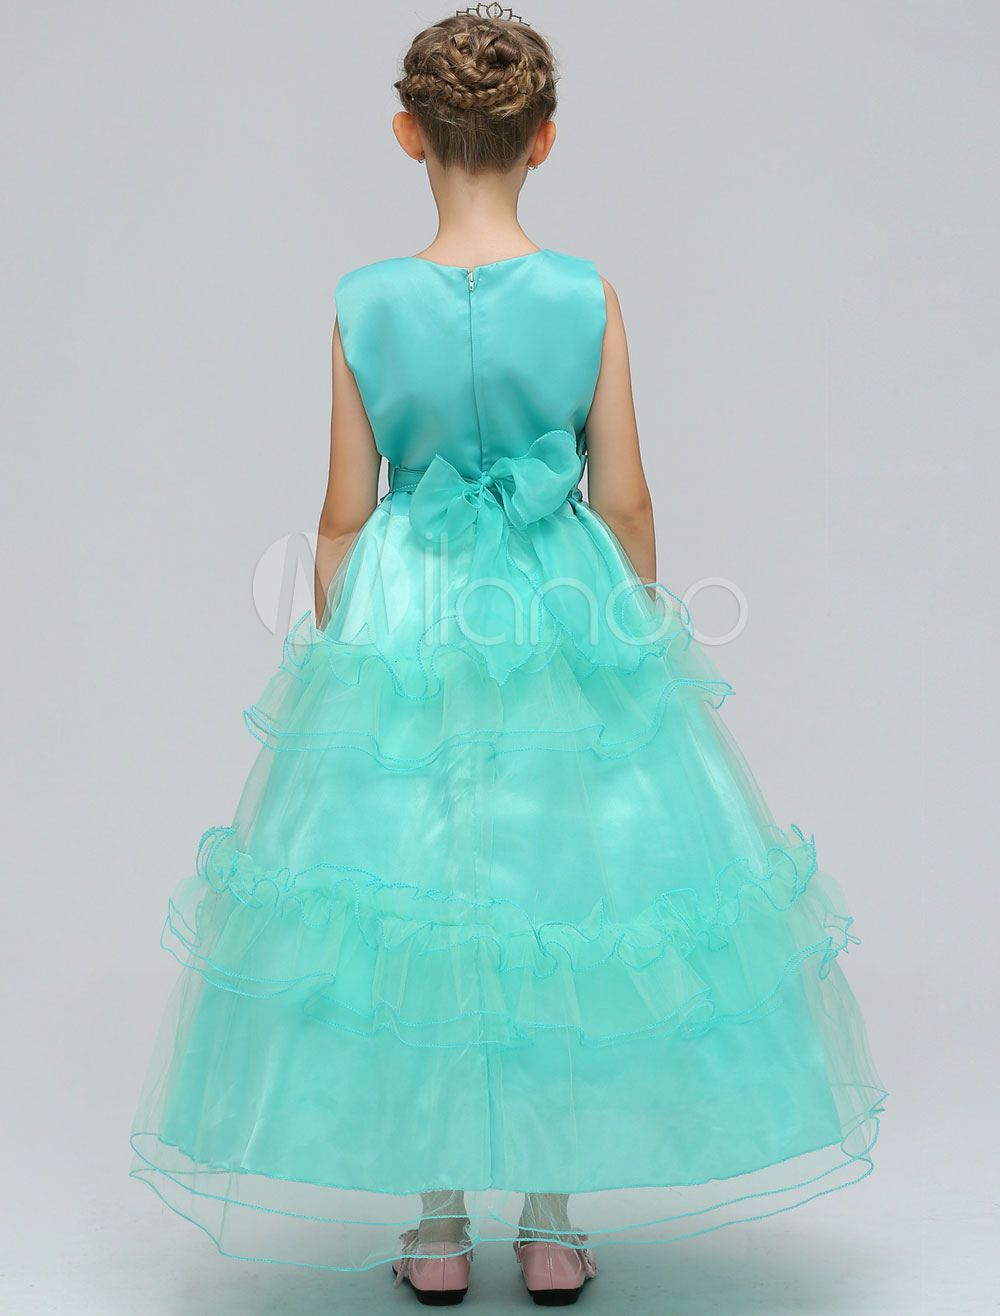 1fe19f409a8a Flower Girl Dresses Mint Green Kids Lace Sash Sleeveless Tiered A Line  Ankle Length Formal Party